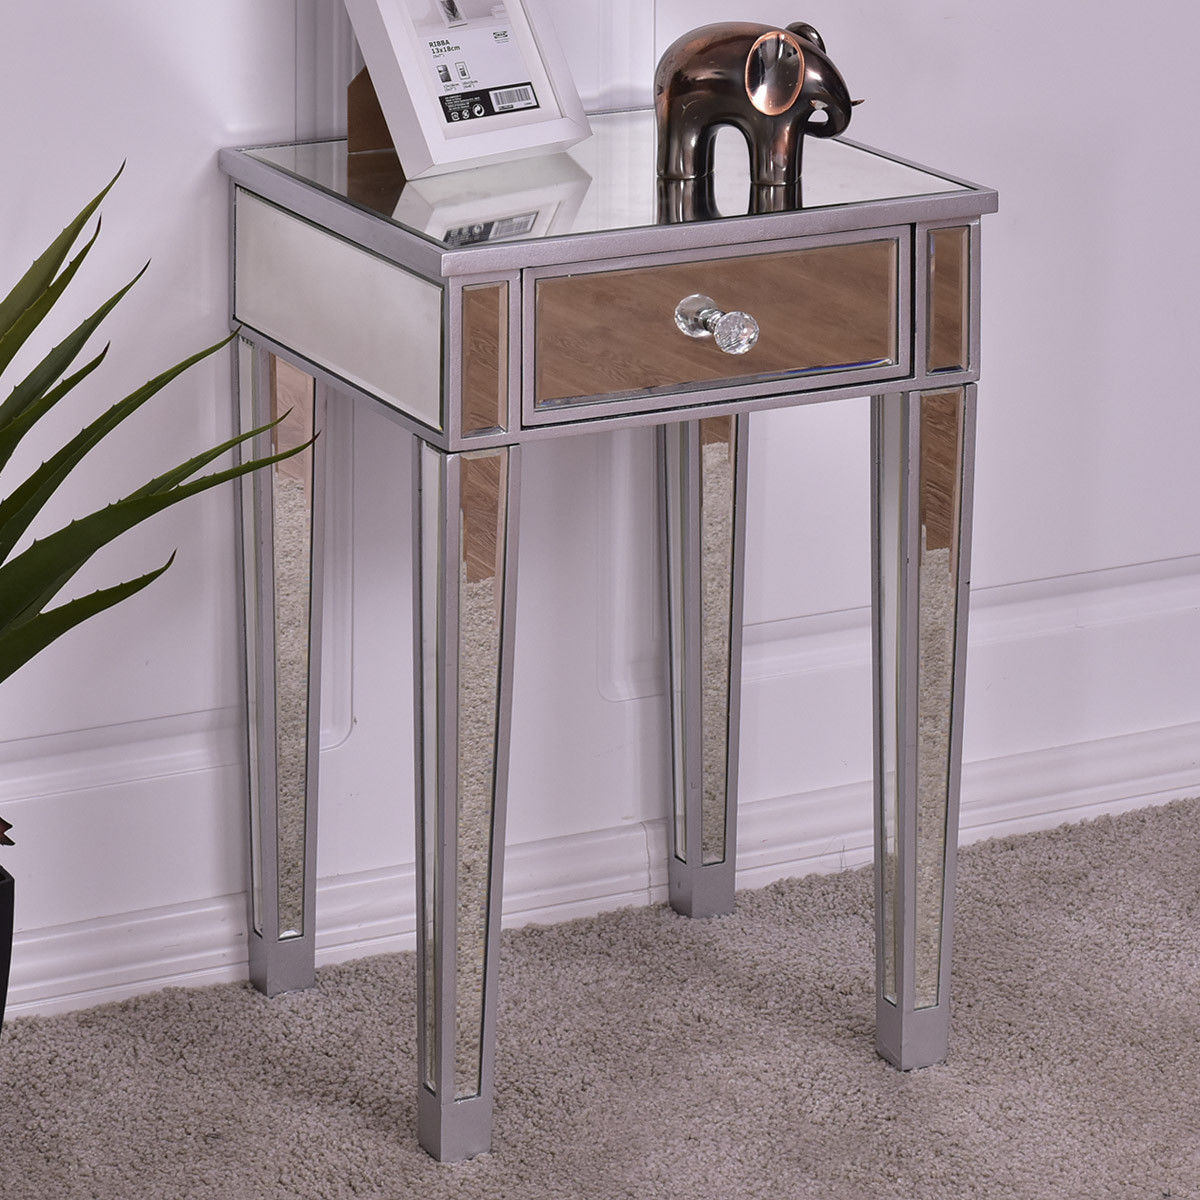 giantex mirrored accent table nightstand end luxury modern bedside storage cabinet with drawer coffee tables and cabinets from furniture blue white porcelain lamp valencia built